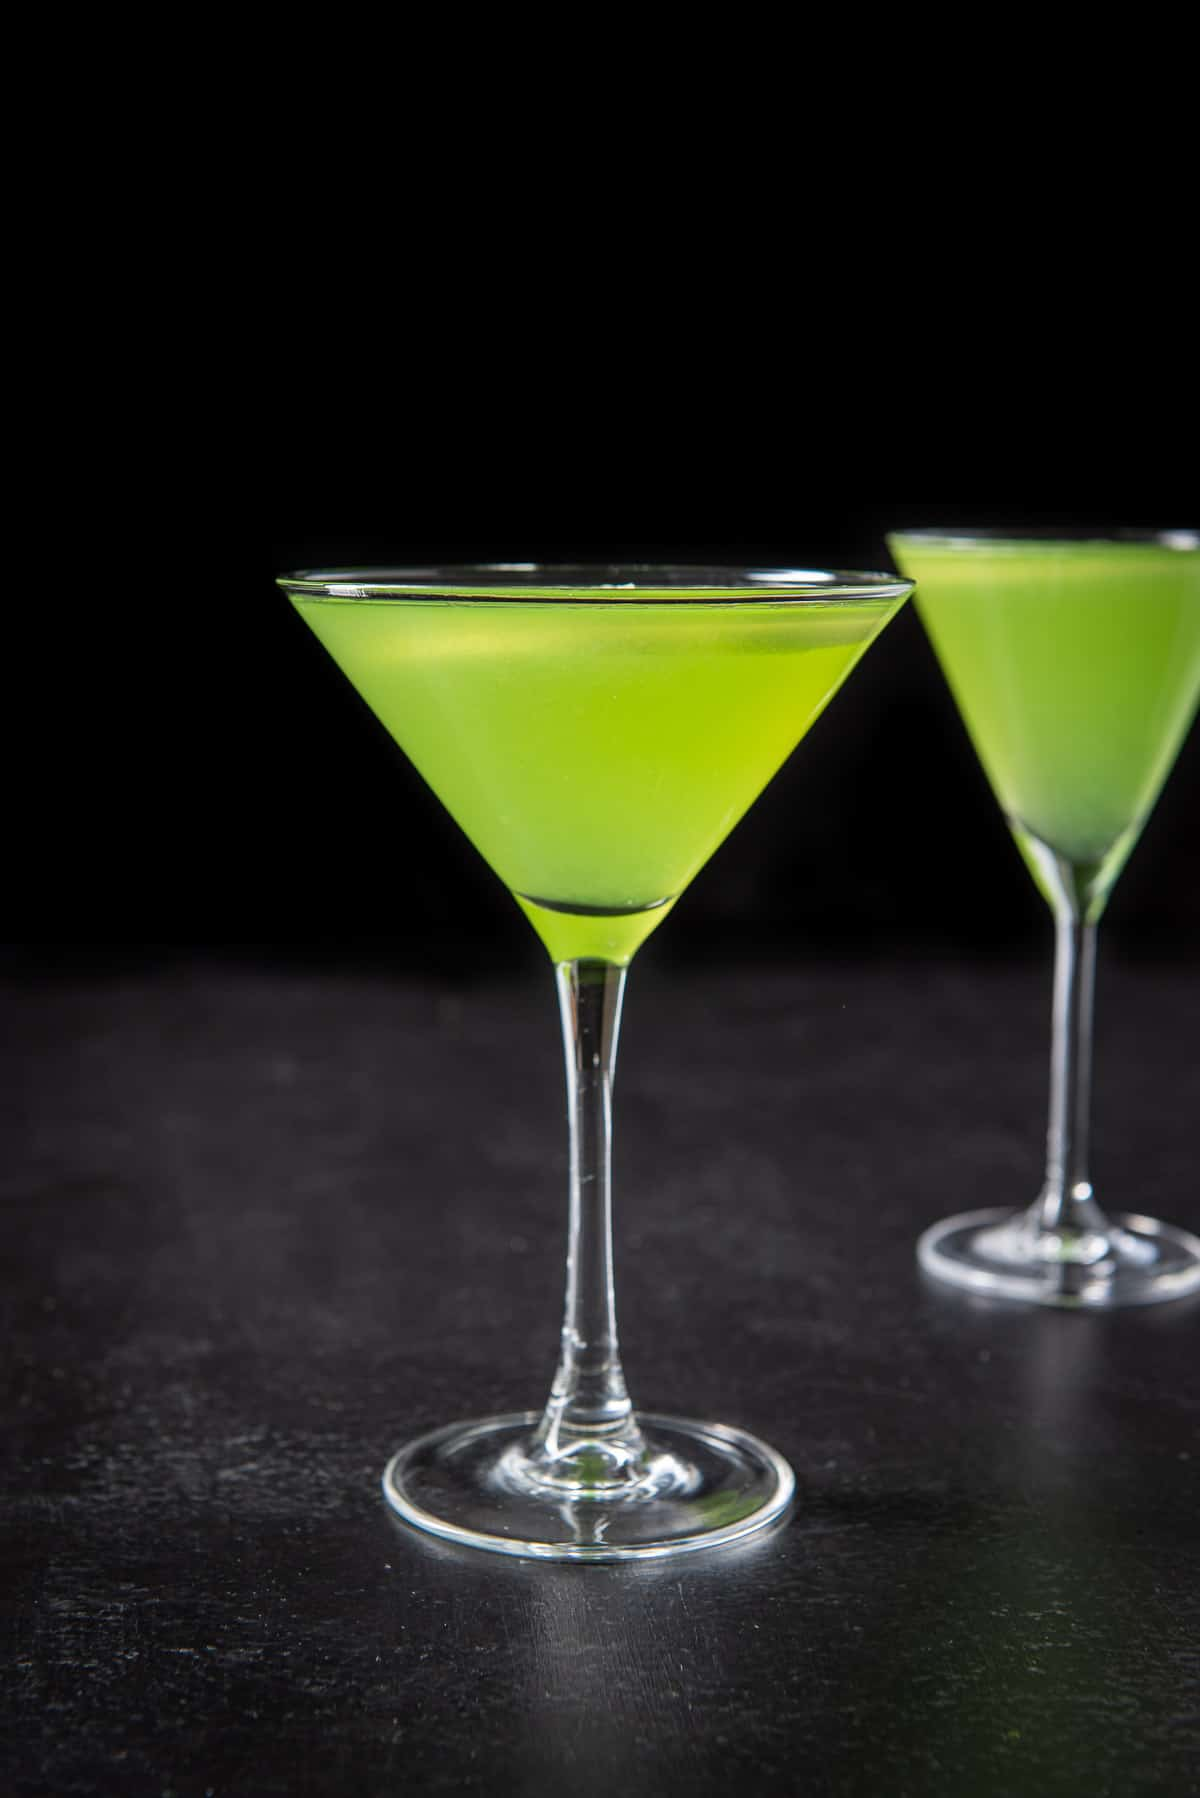 Vertical view of the sour appletini cocktail